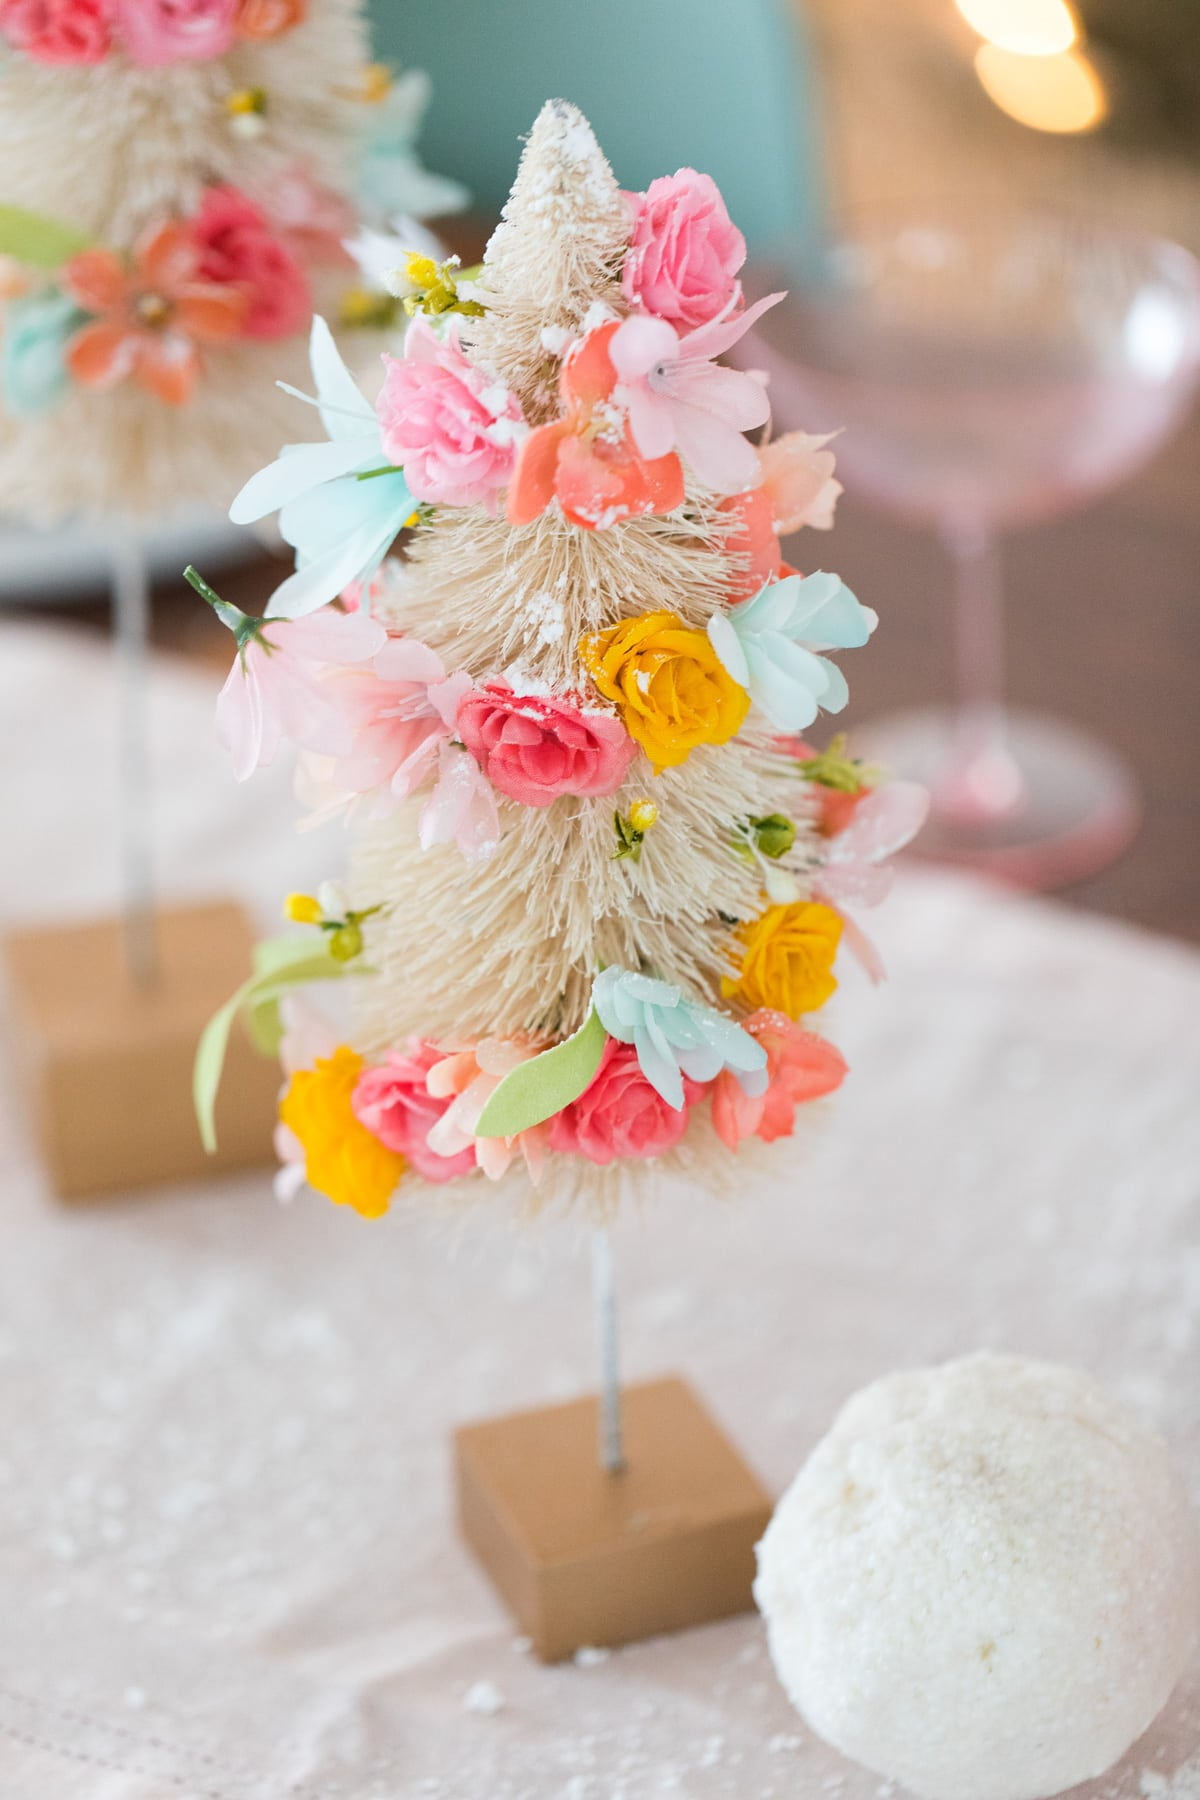 the final product! Faux Flower Bottle Brush Tree DIY Christmas Centerpiece Idea by top Houston lifestyle blogger Ashley Rose of Sugar and Cloth #diy #christmas #decor #howto #craft #entertaining #centerpiece #ideas